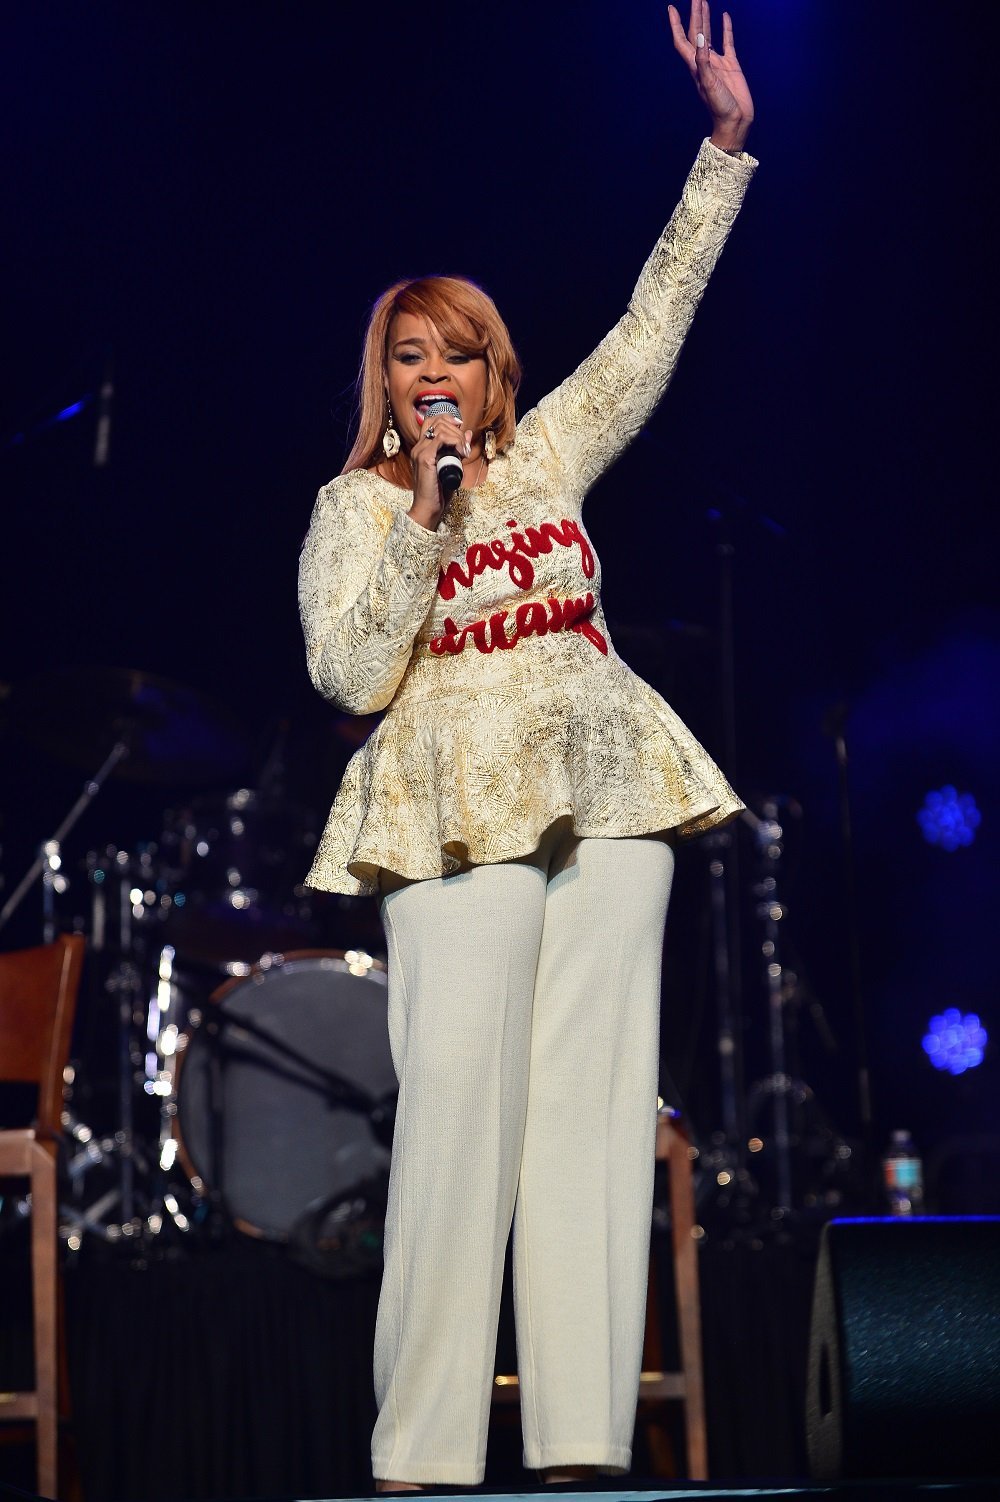 Karen Clark Sheard on May 14, 2017 in Coral Gables, Florida | Photo: Getty Images